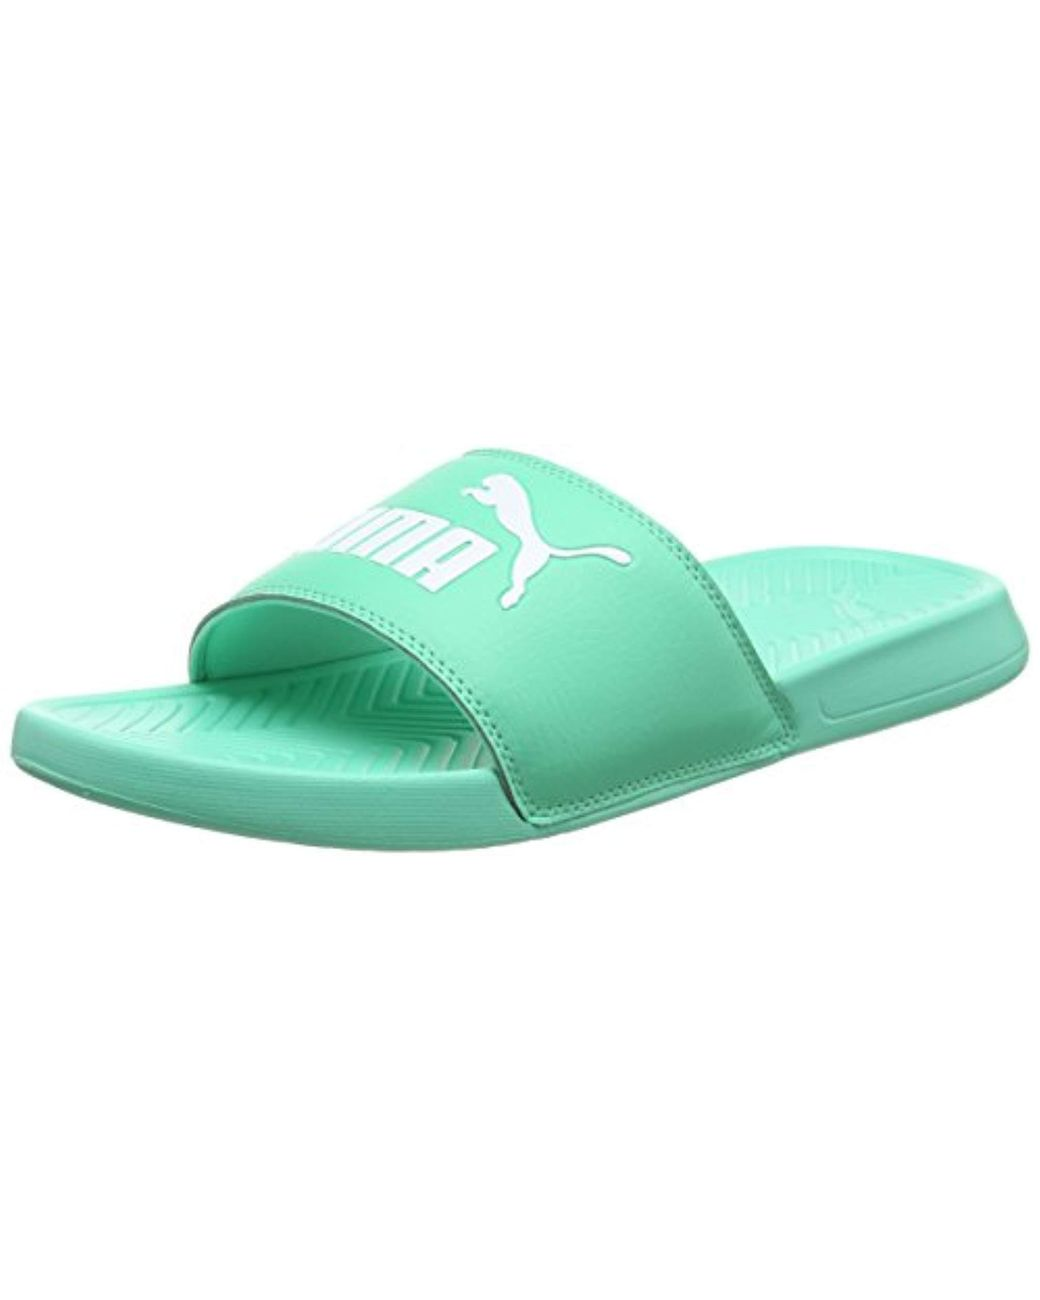 b1bdee7c477b PUMA Unisex Adults  Popcat Beach   Pool Shoes in Green - Save 11% - Lyst